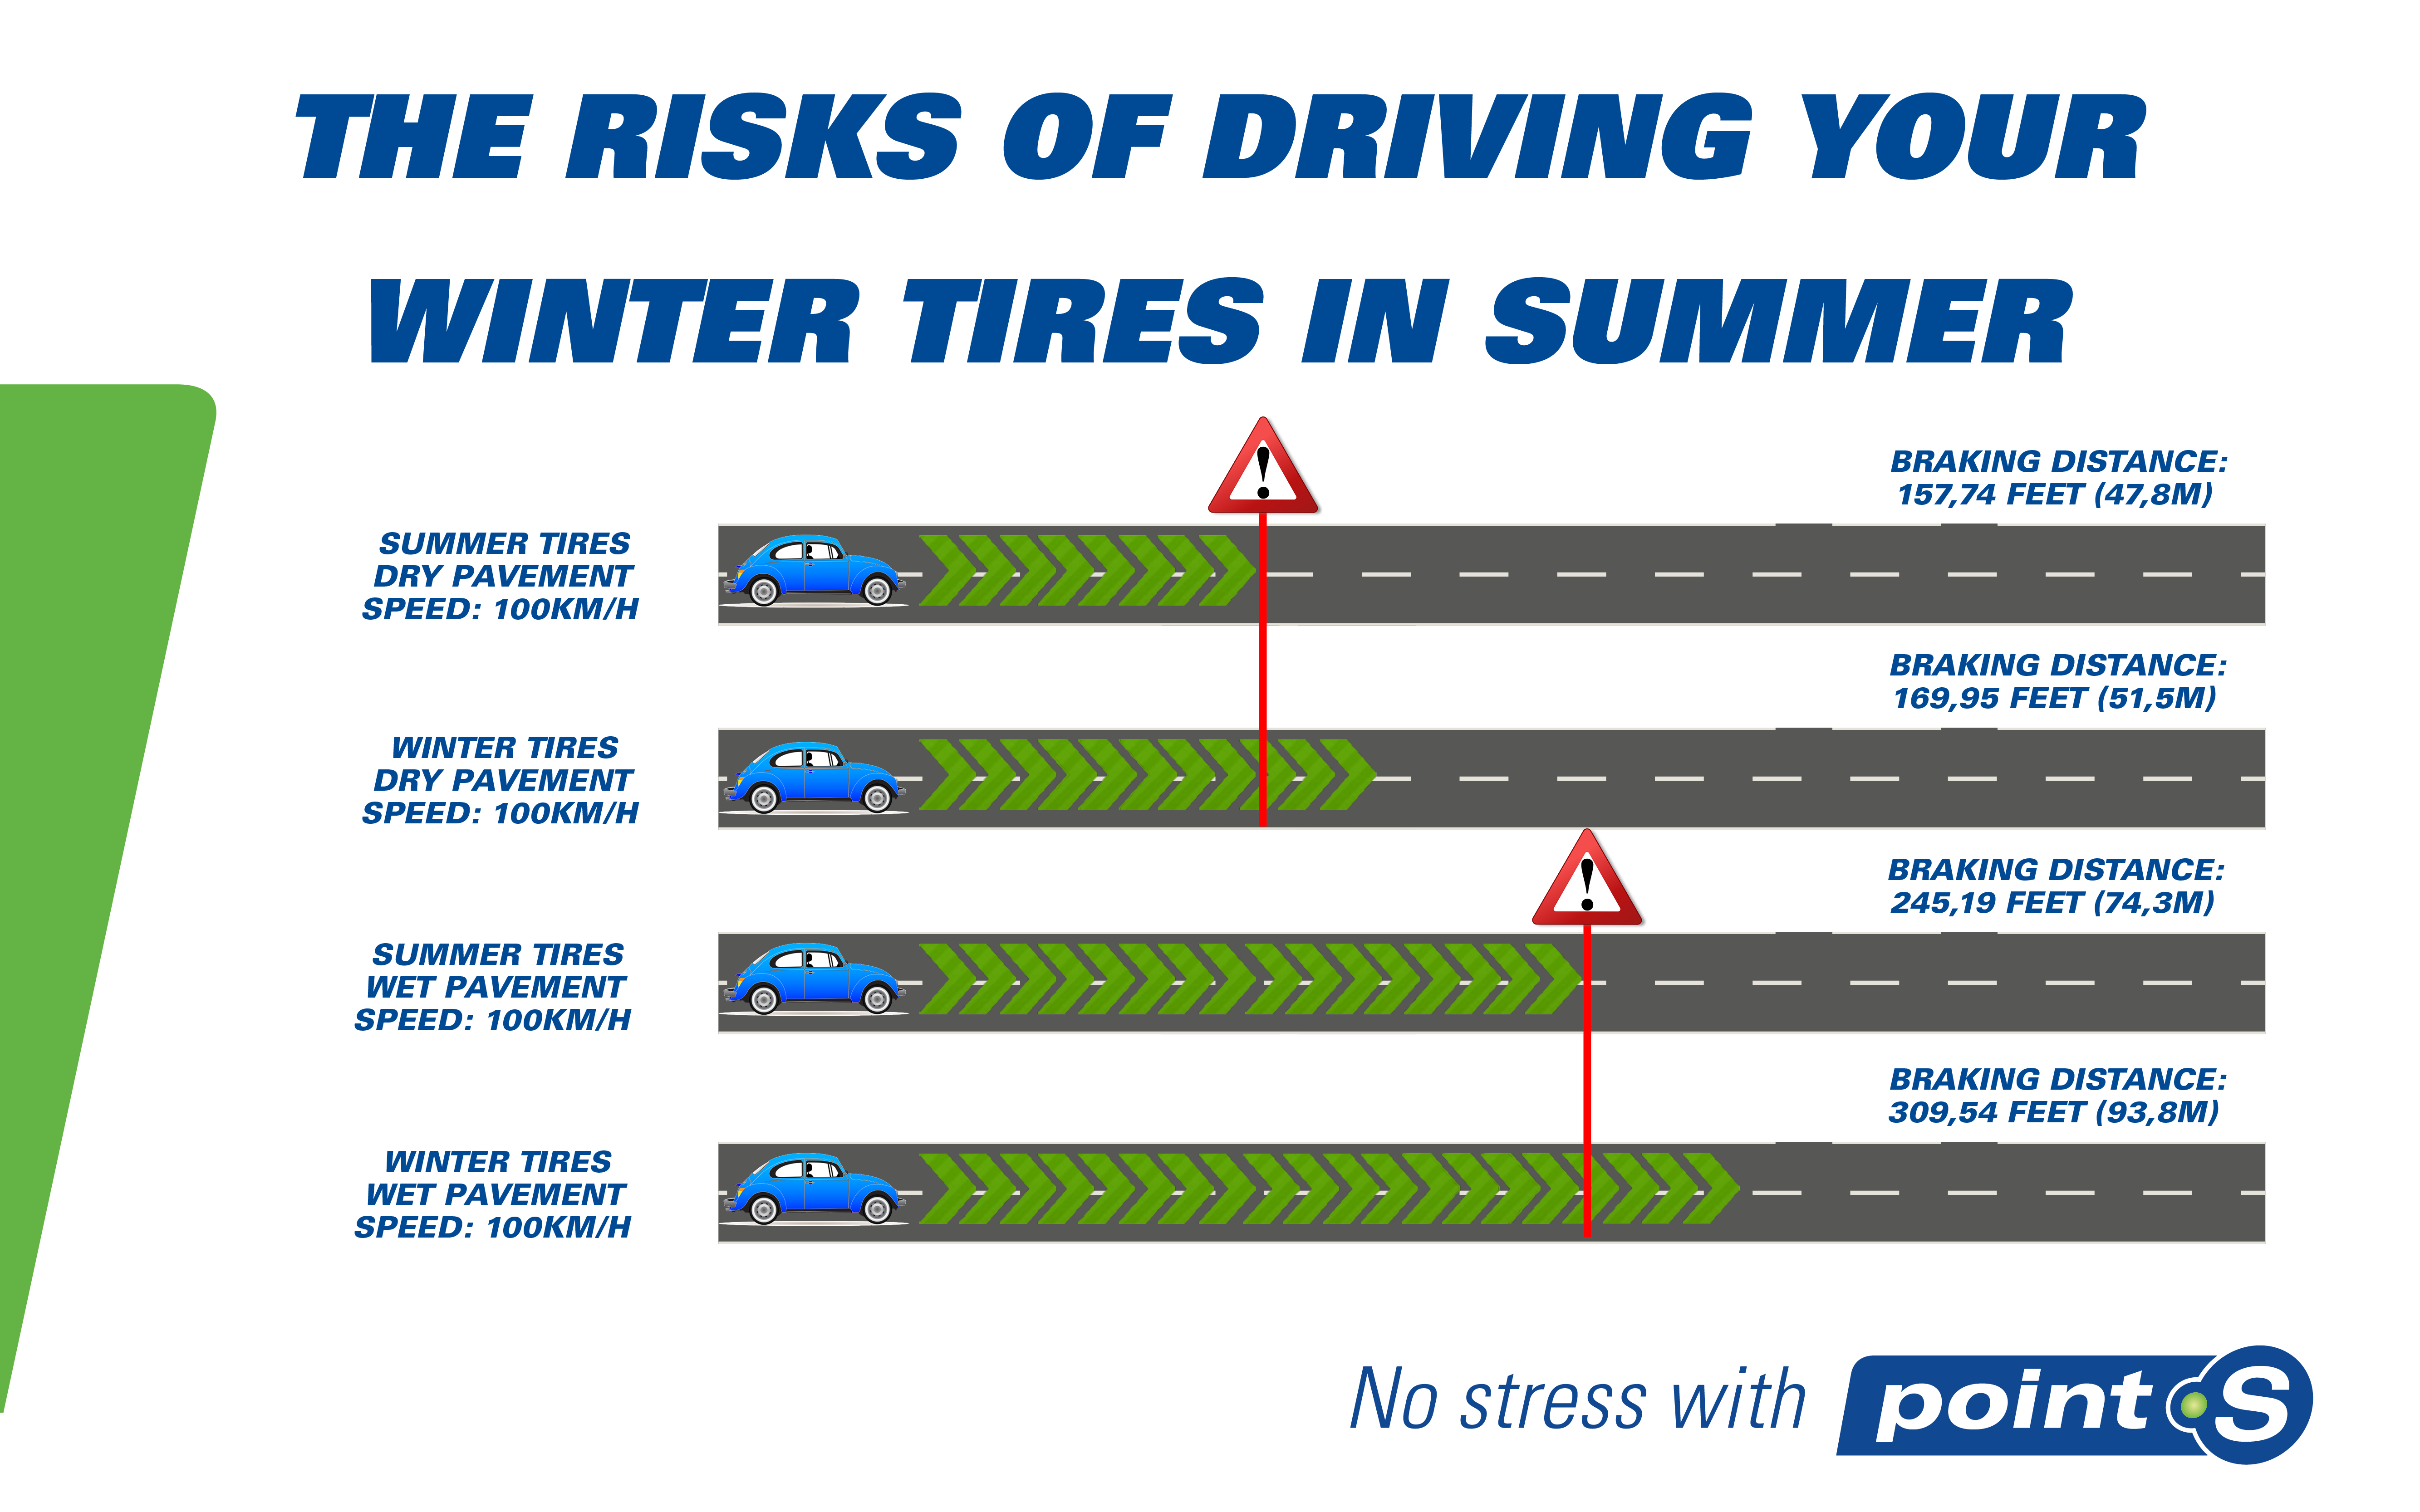 The risks of driving your winter tires in summer